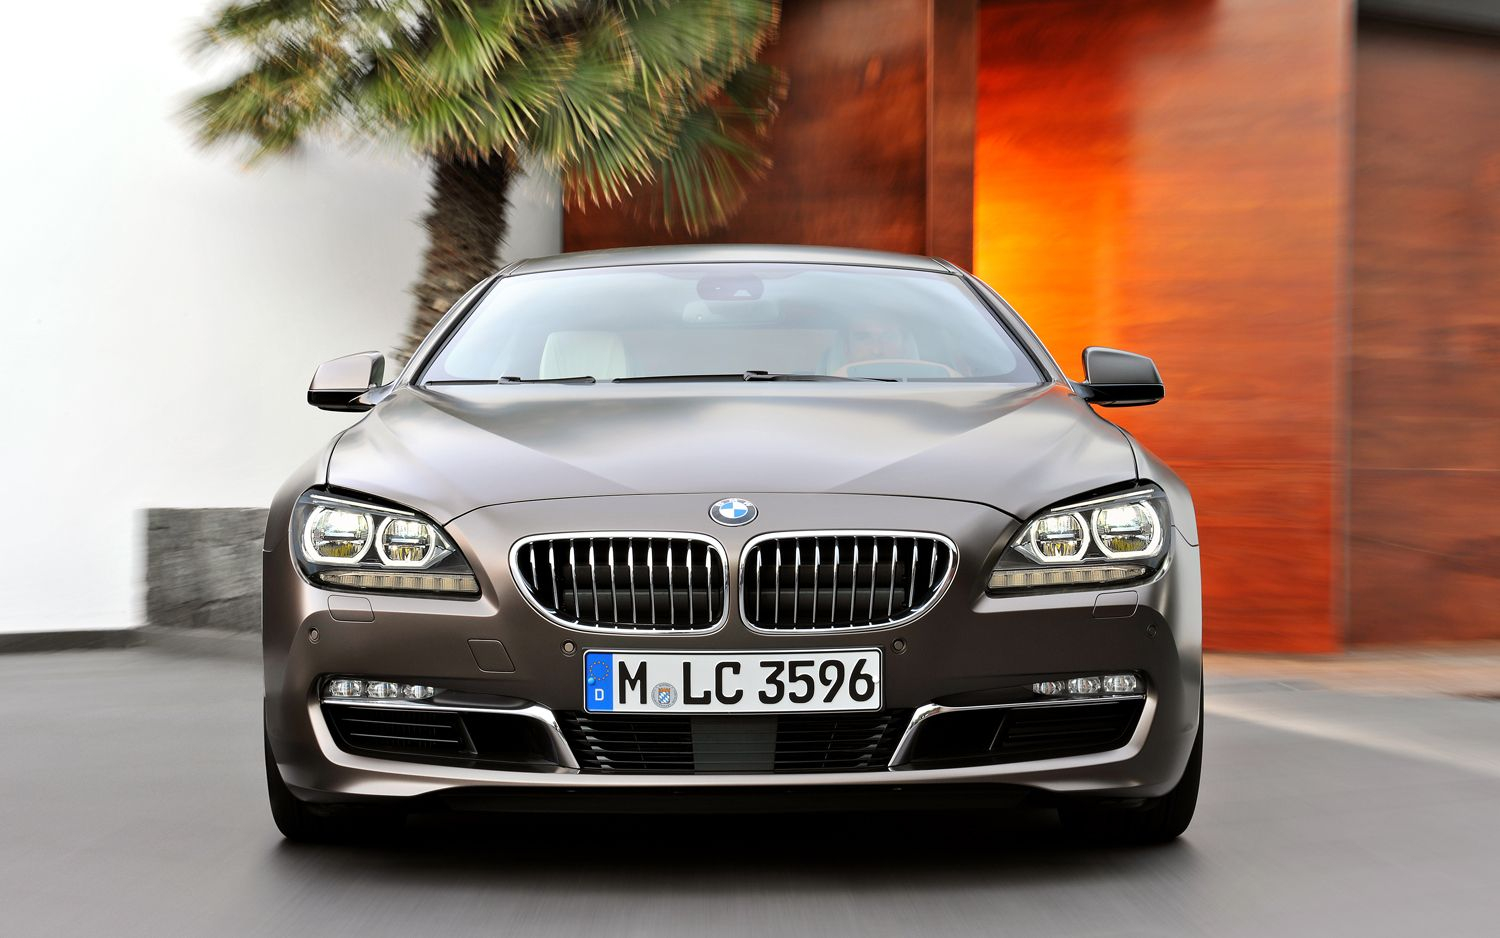 2013 BMW 6 Series Gran Coupe Front View Parked1